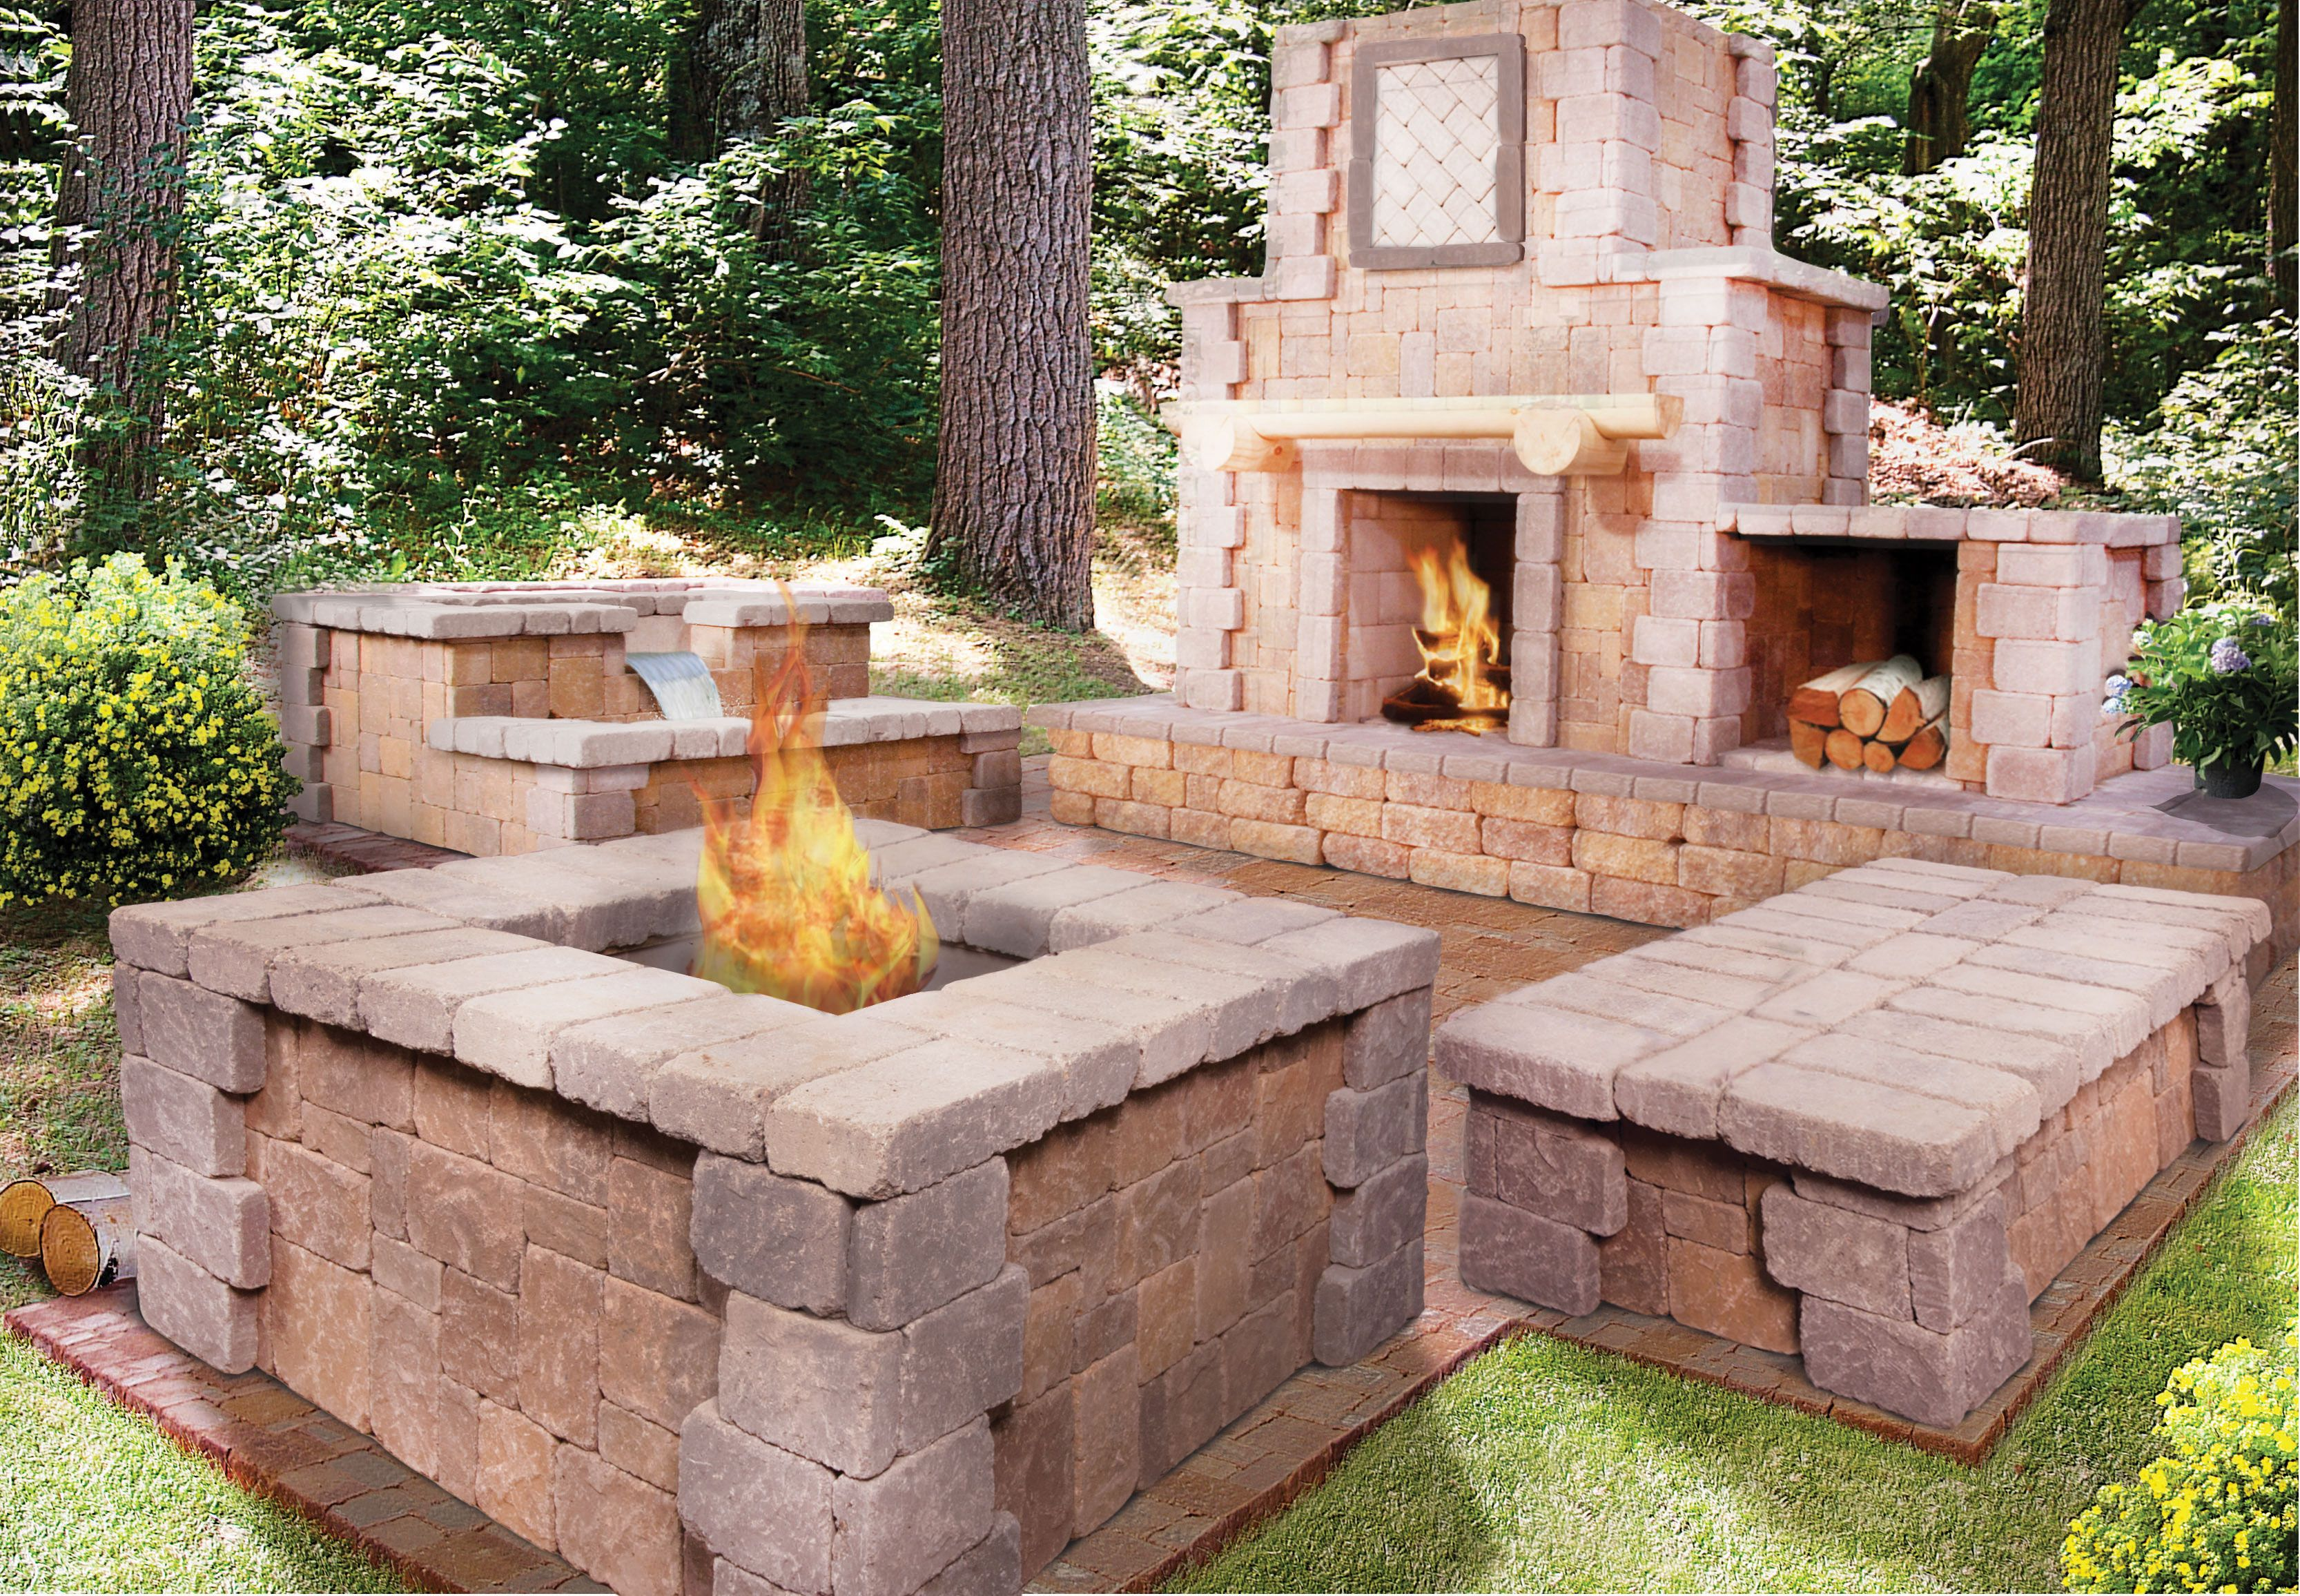 The Cantwell Fireplace will make a bold and elegant